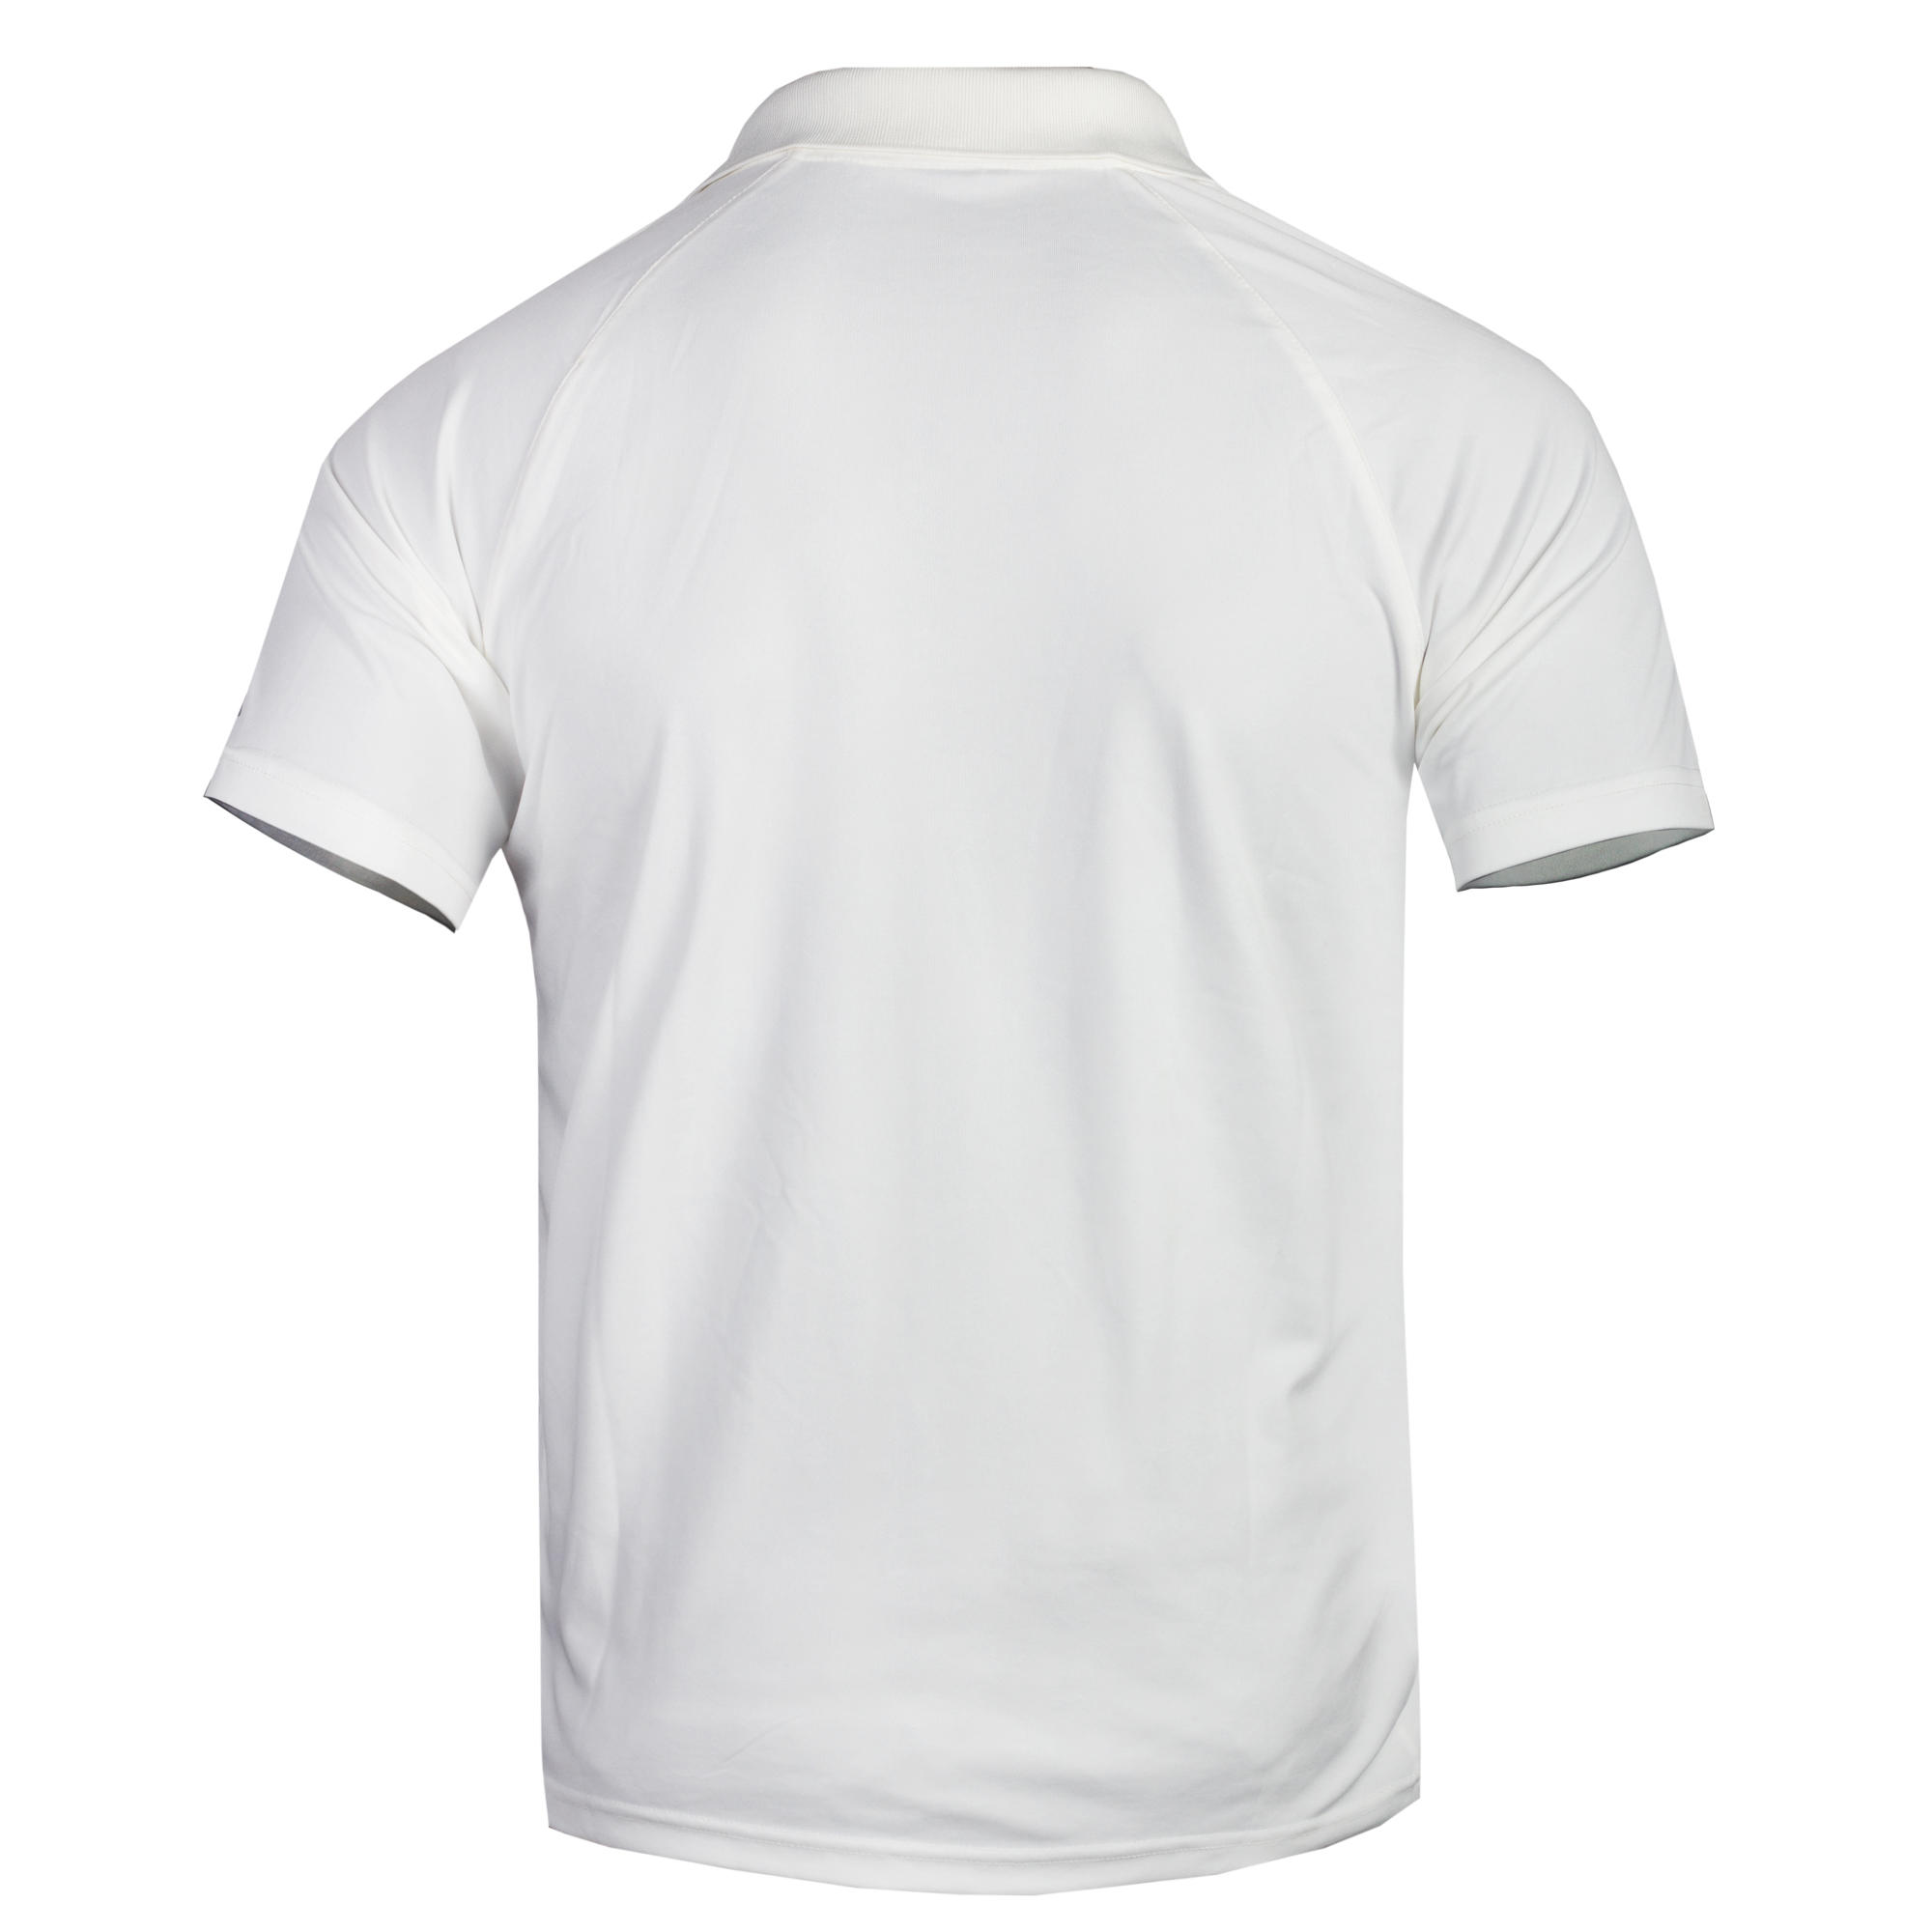 CRICKET WHITE POLO PW 900